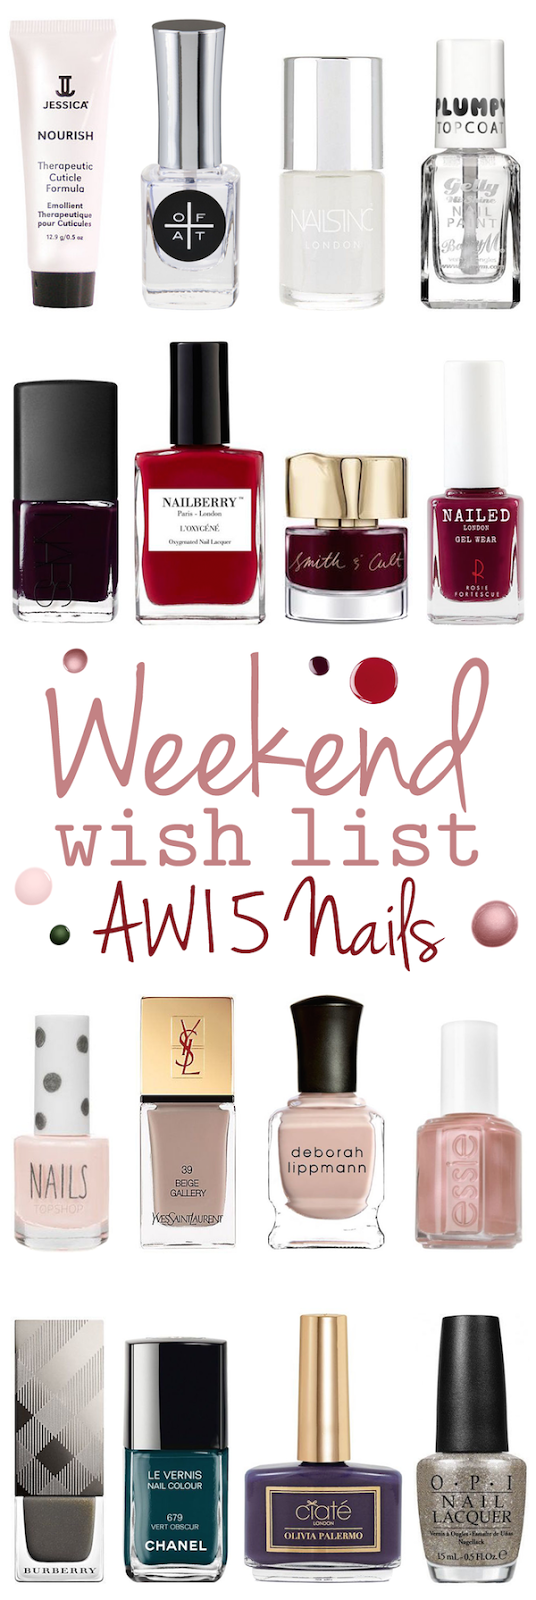 Weekend Wish List – AW15 Nails